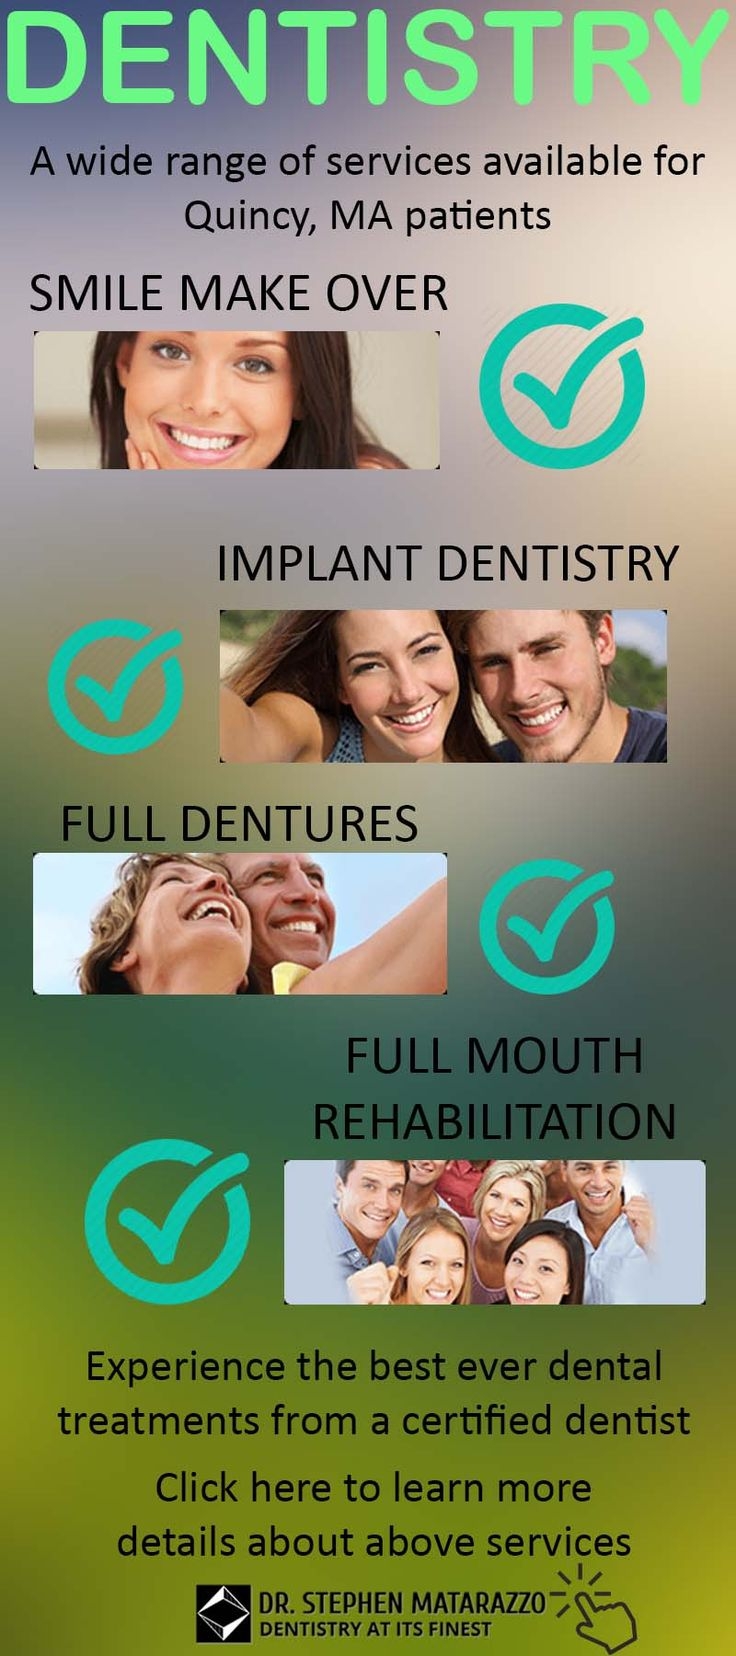 Dr. Stephen Matarazzo is the dentist Quincy patients trust for clear communication of treatment options and personalized treatment. Call 617 405 3939 #dentistry #dentalservice #oral #dentist #quincy #MA #smile #teeth #implants #DentalImplants